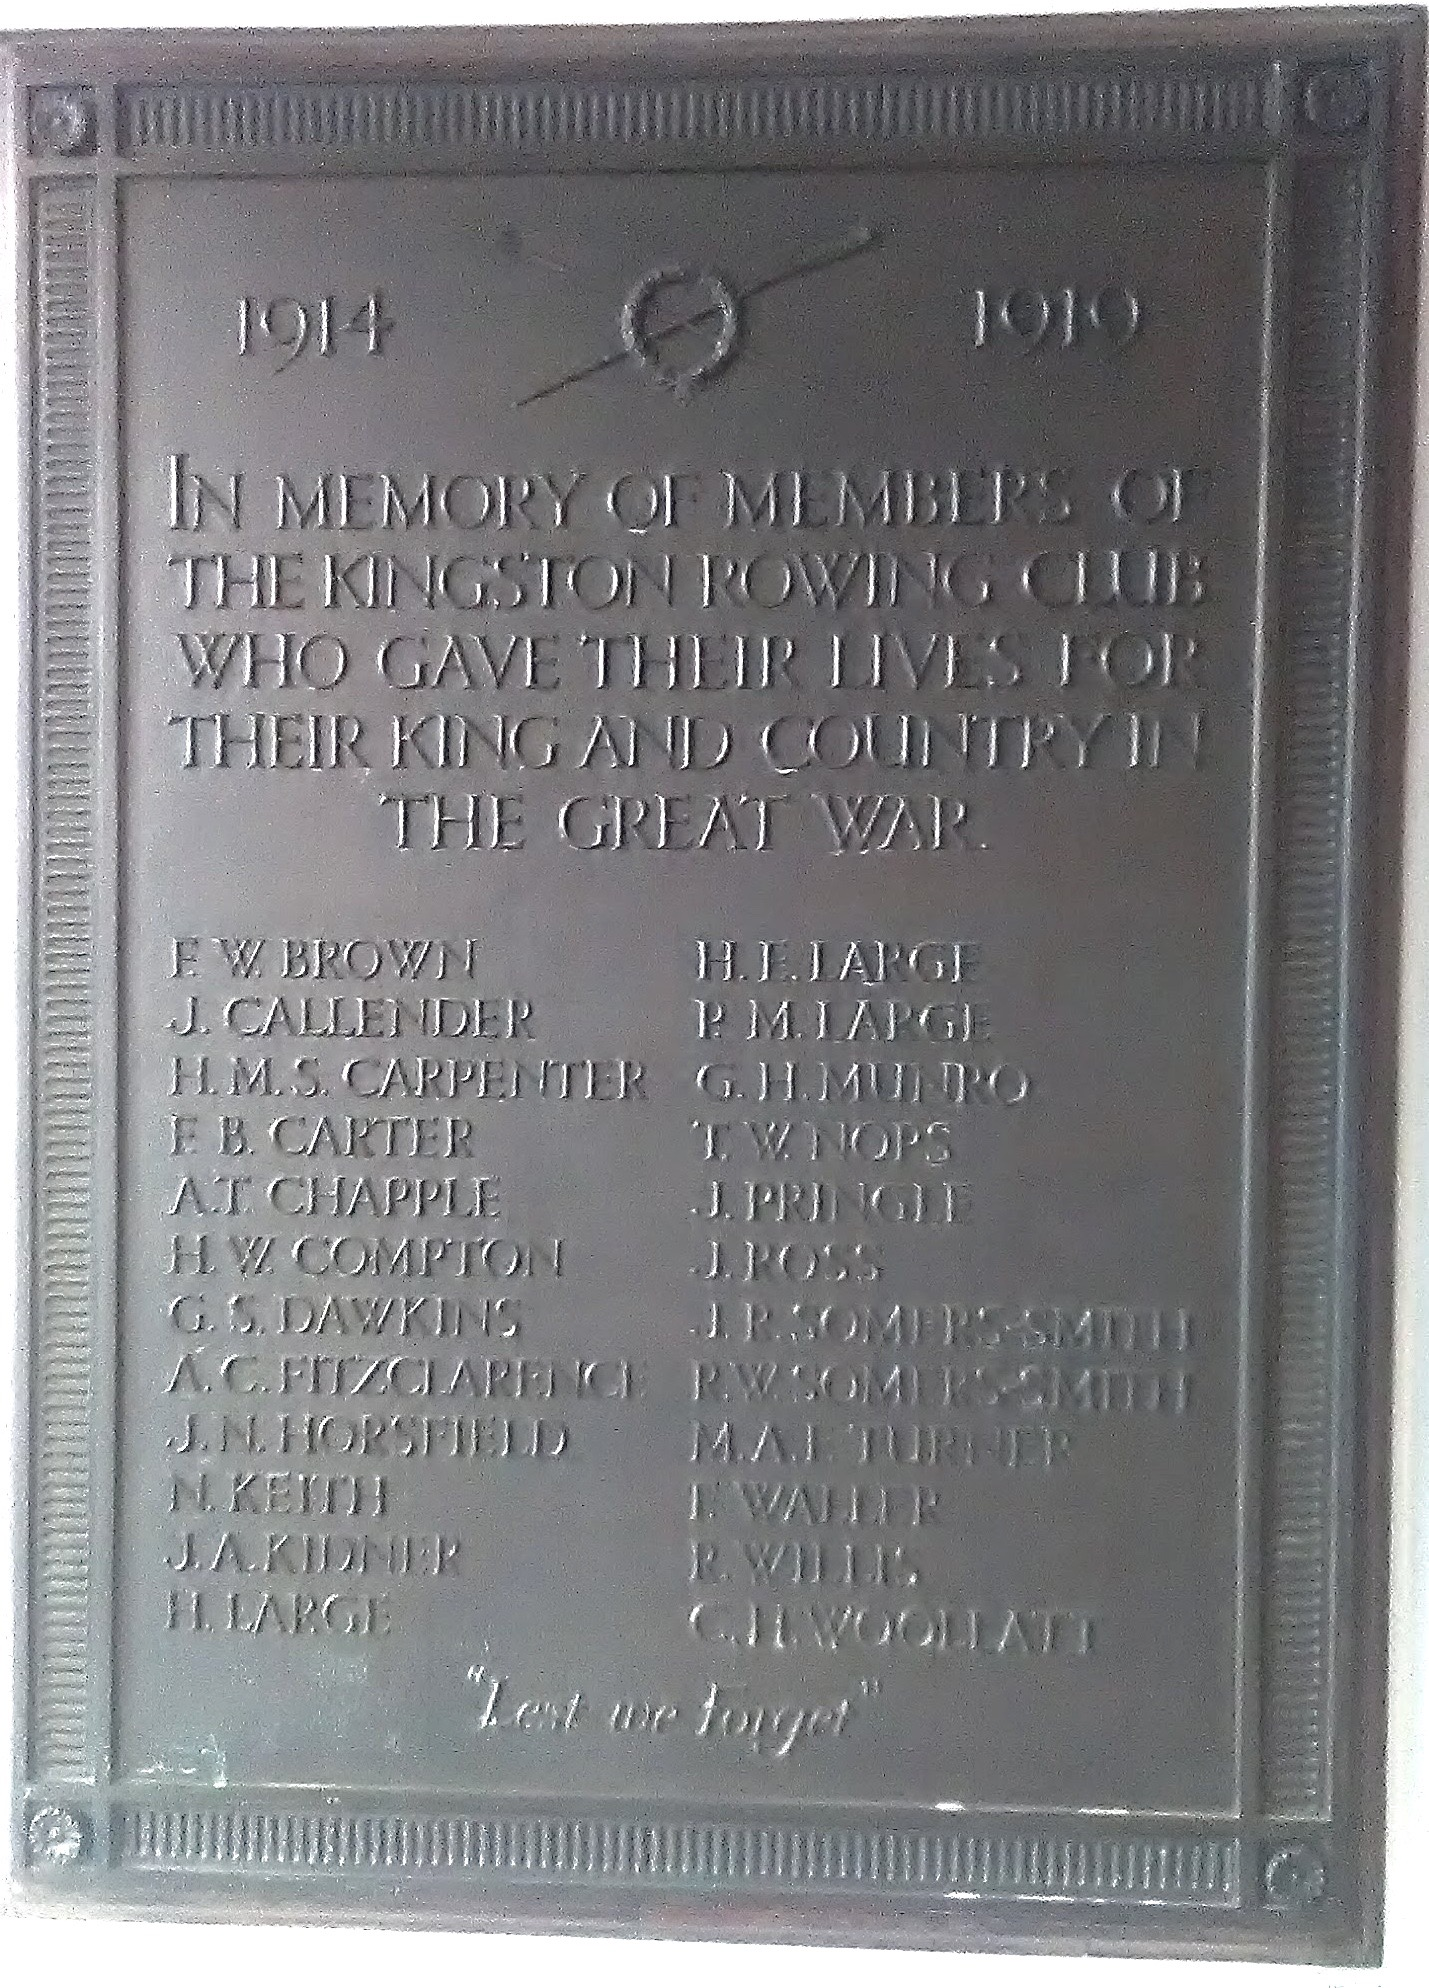 Rolls Of Honour Further Images Of Rowing Club War Memorials Hear The Boat Sing